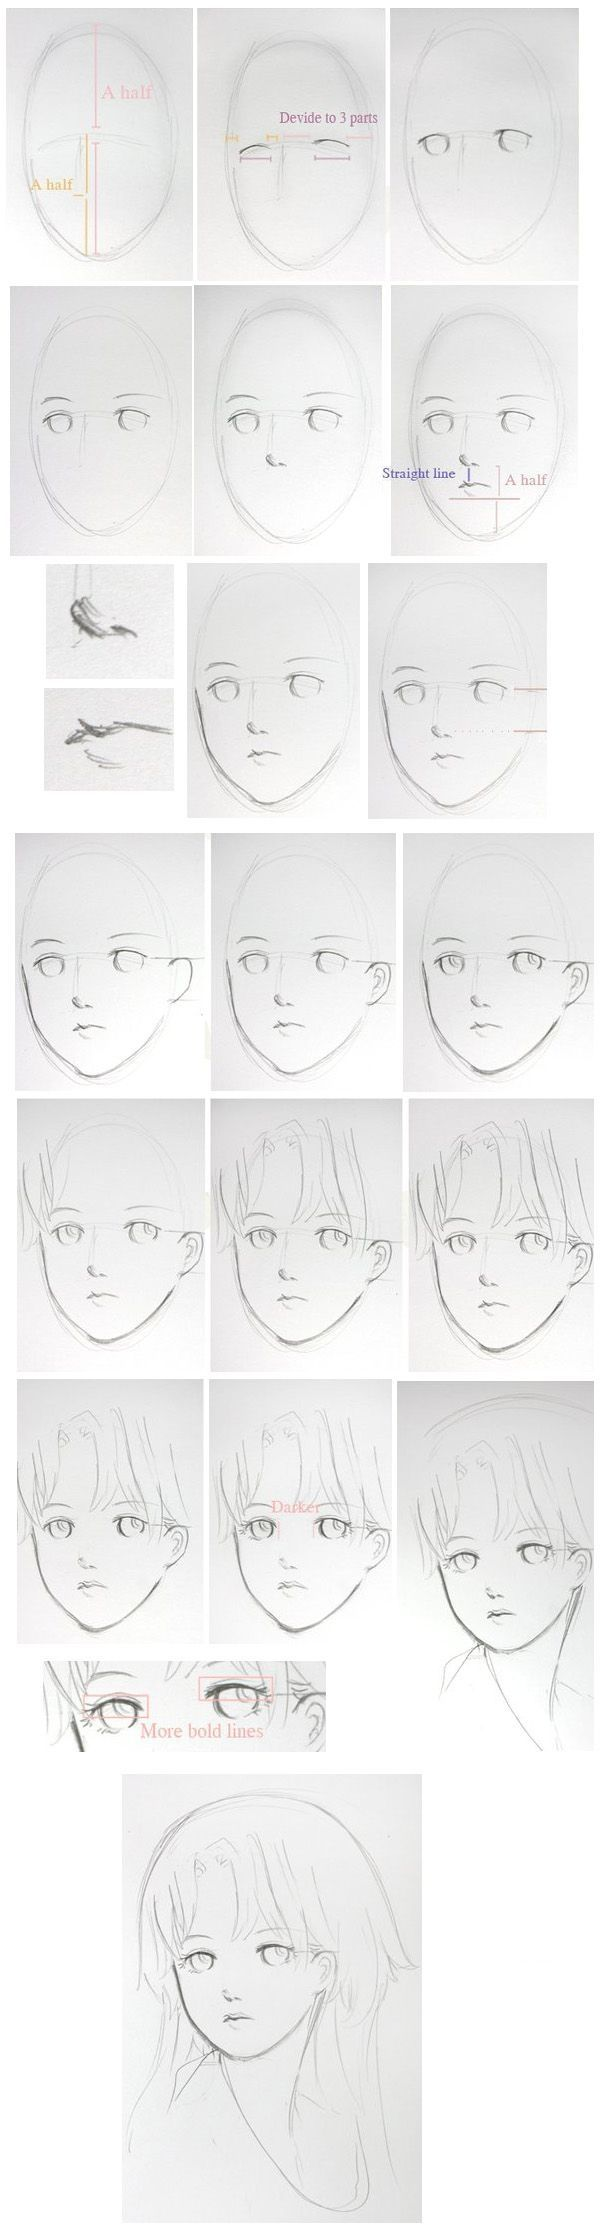 #Drawing | #Anime | #Manga | #Tutorial | #Face by Williams1967